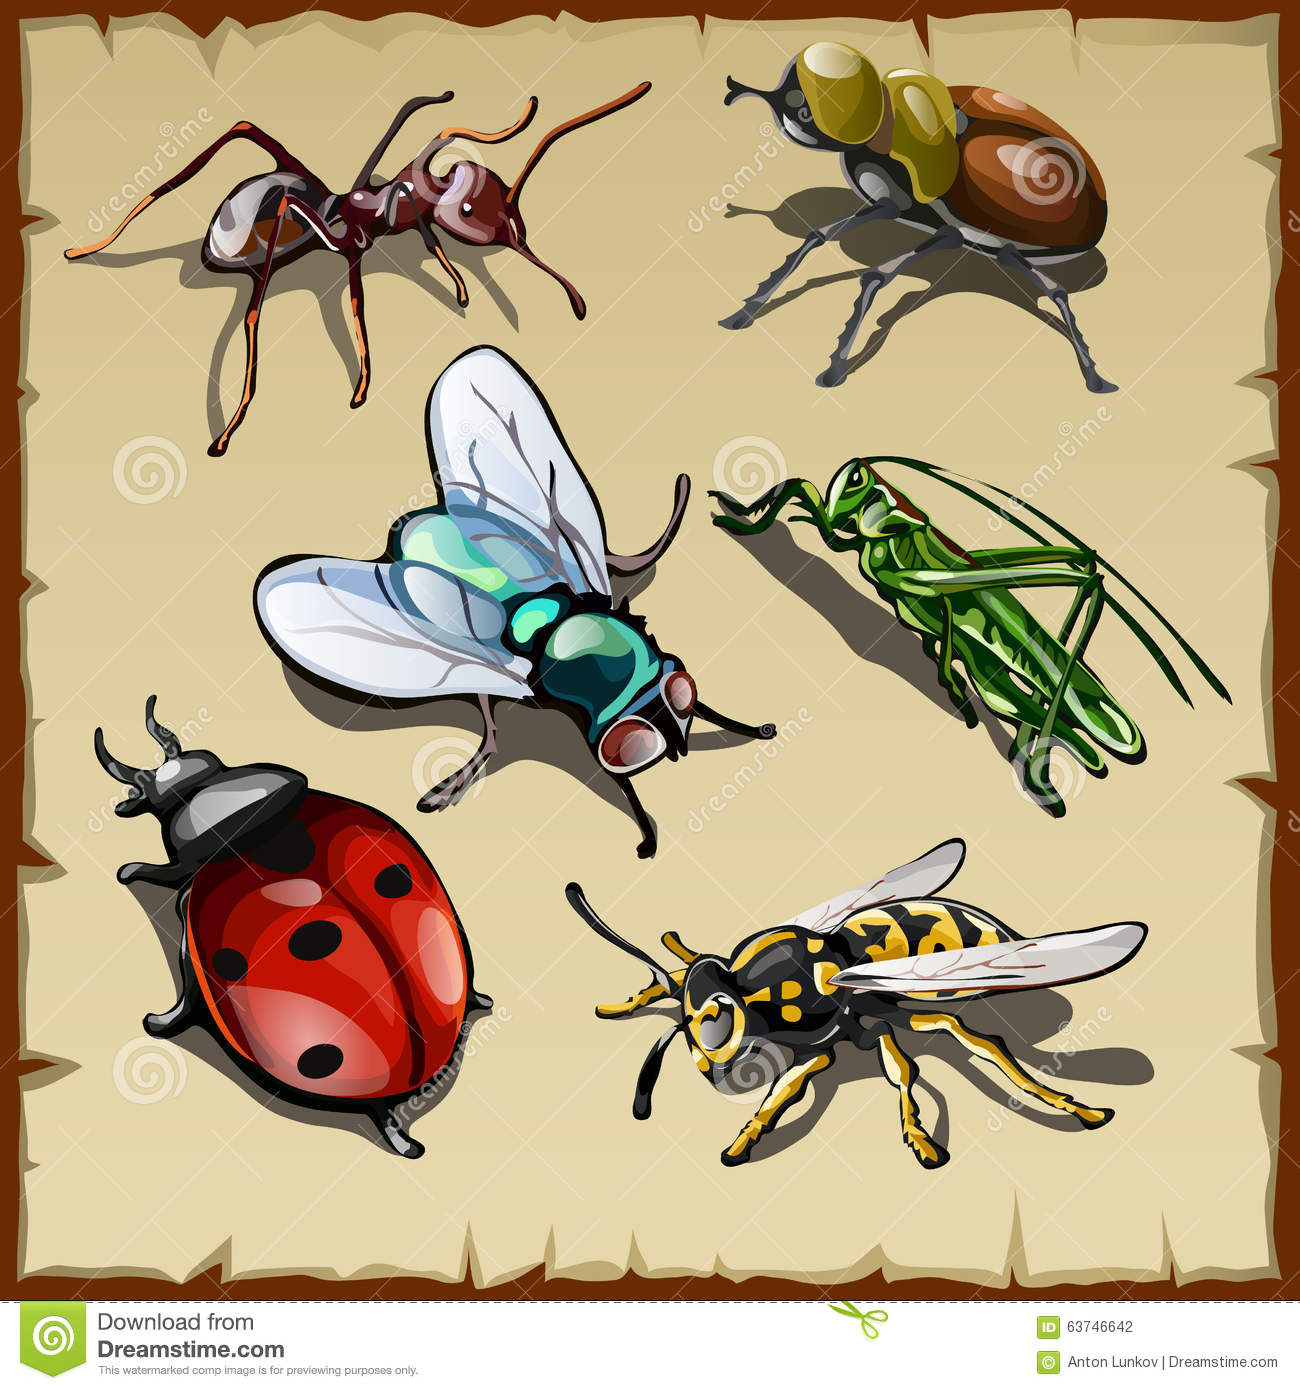 Big vector set of different insects, six varieties